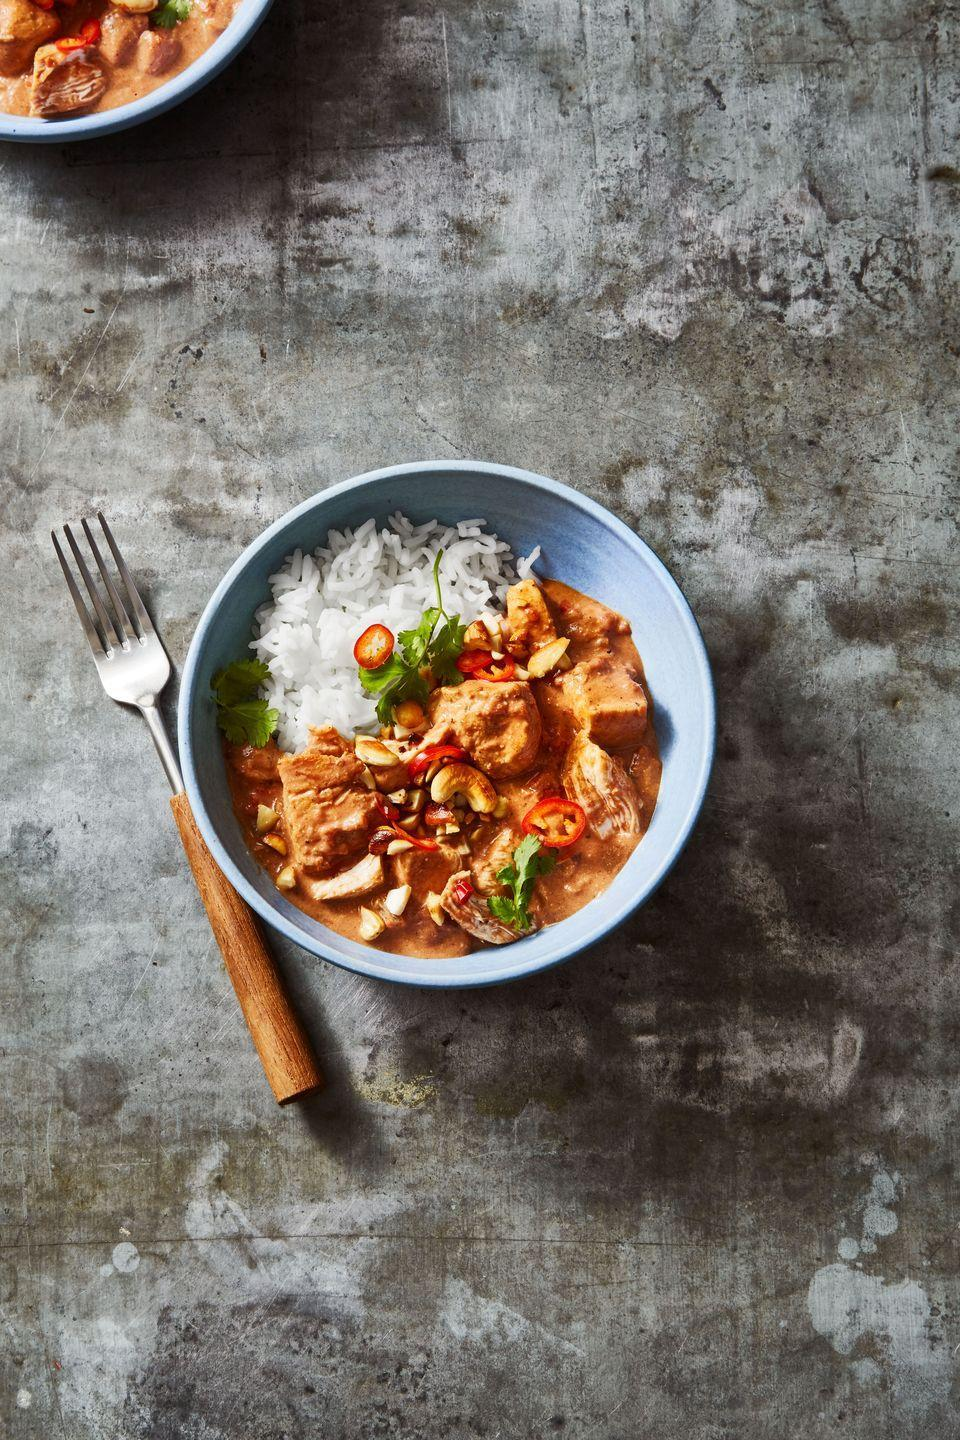 """<p>Cozy-up with your boo and a bowl of warm, comforting curry.</p><p><em><a href=""""https://www.goodhousekeeping.com/food-recipes/a10079/coconut-curry-chicken-recipe-ghk0510/"""" rel=""""nofollow noopener"""" target=""""_blank"""" data-ylk=""""slk:Get the recipe for Coconut Curry Chicken »"""" class=""""link rapid-noclick-resp"""">Get the recipe for Coconut Curry Chicken »</a></em> </p>"""